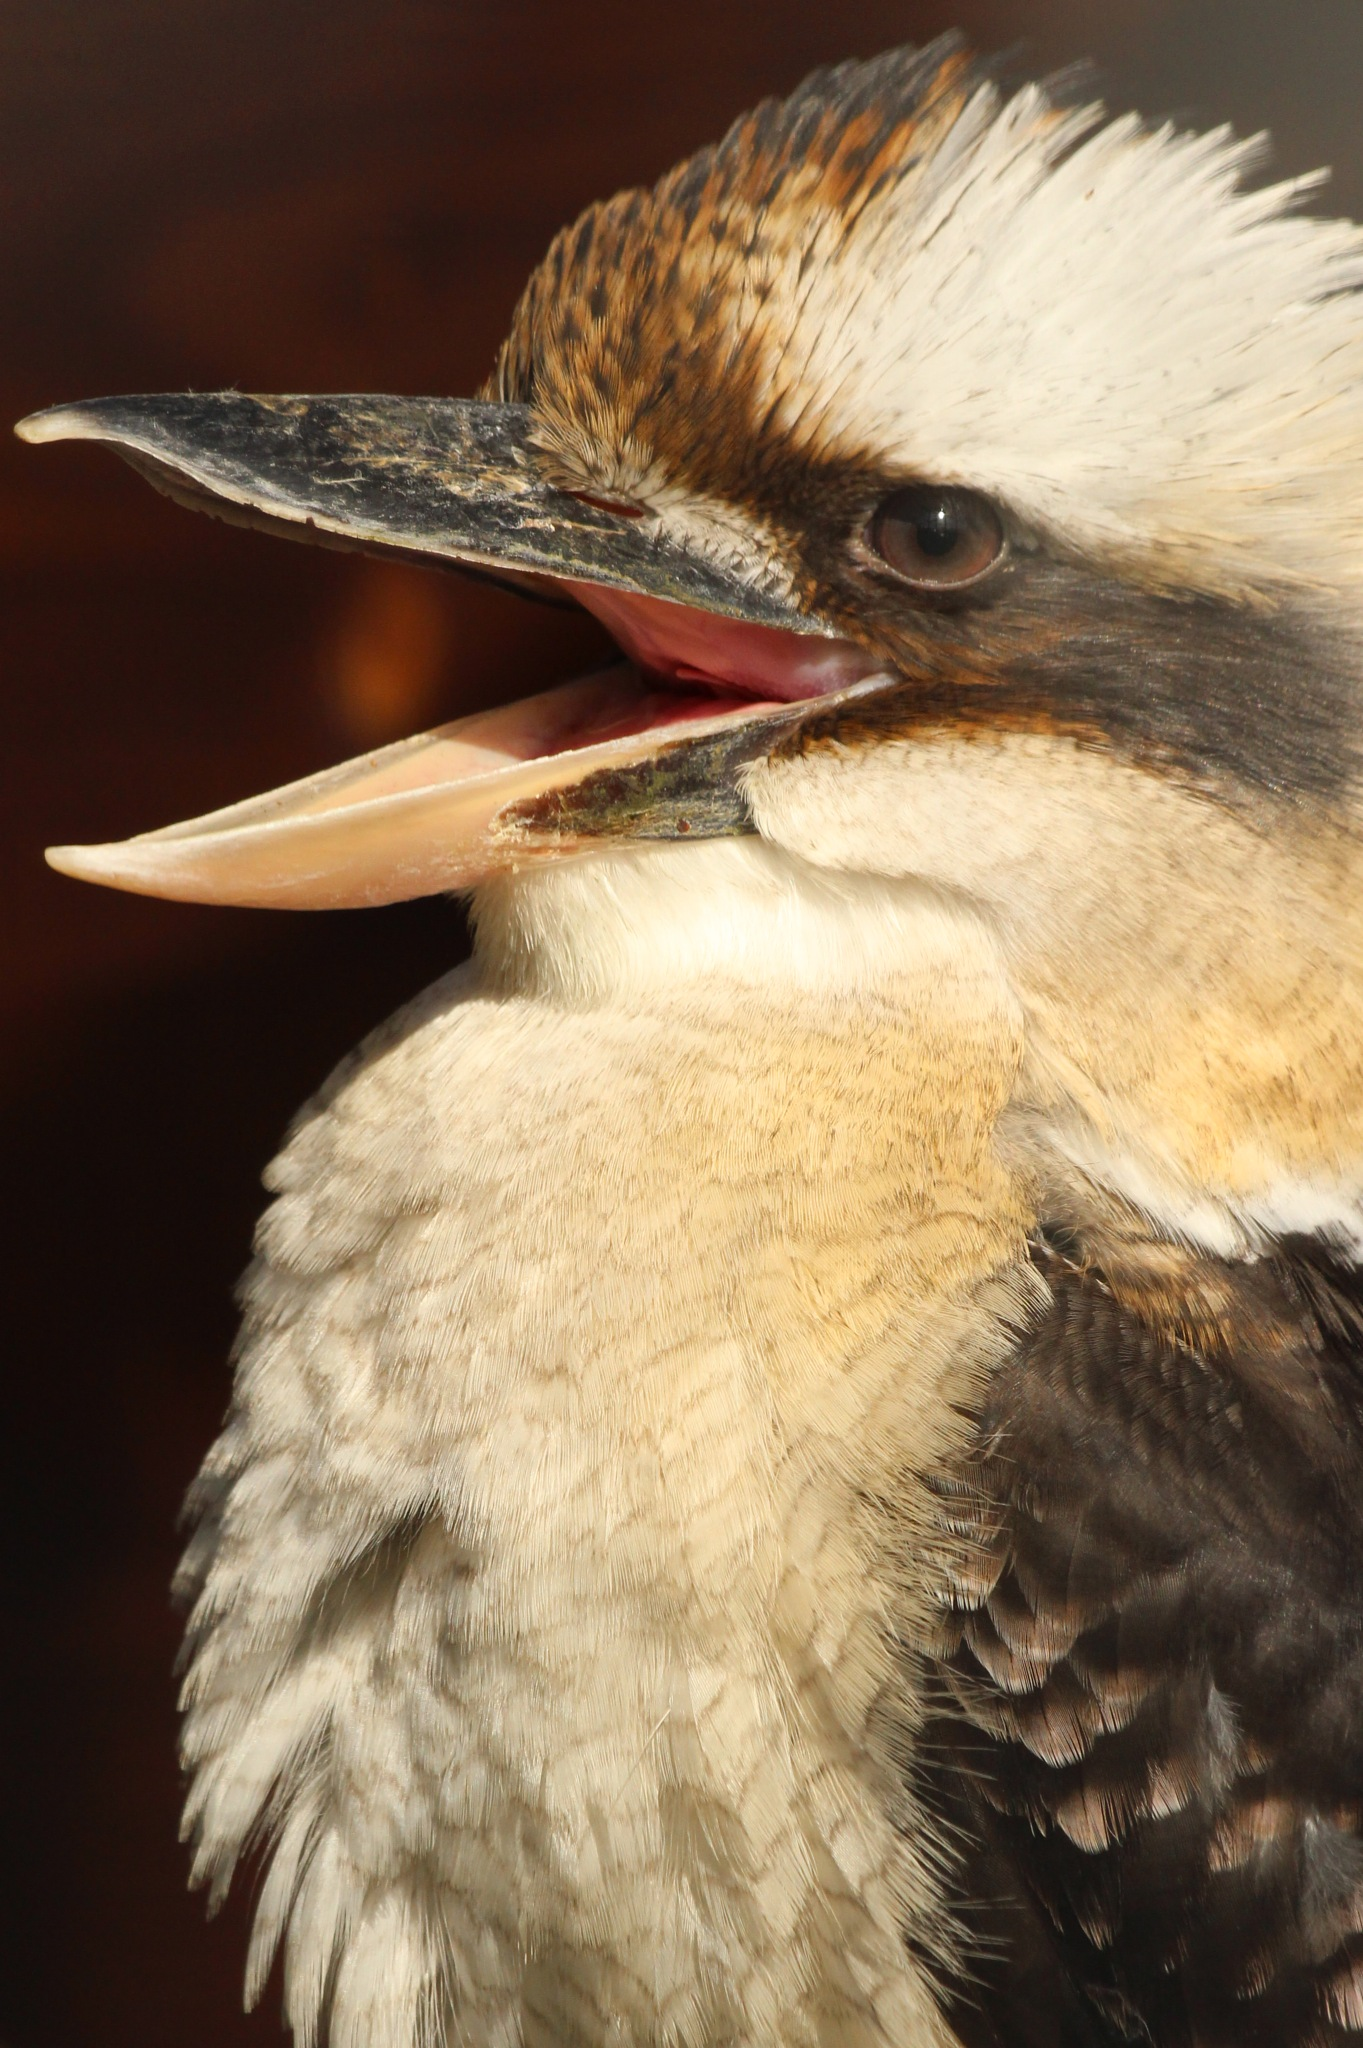 Laughing Kookaburra by cliff.tolley.7